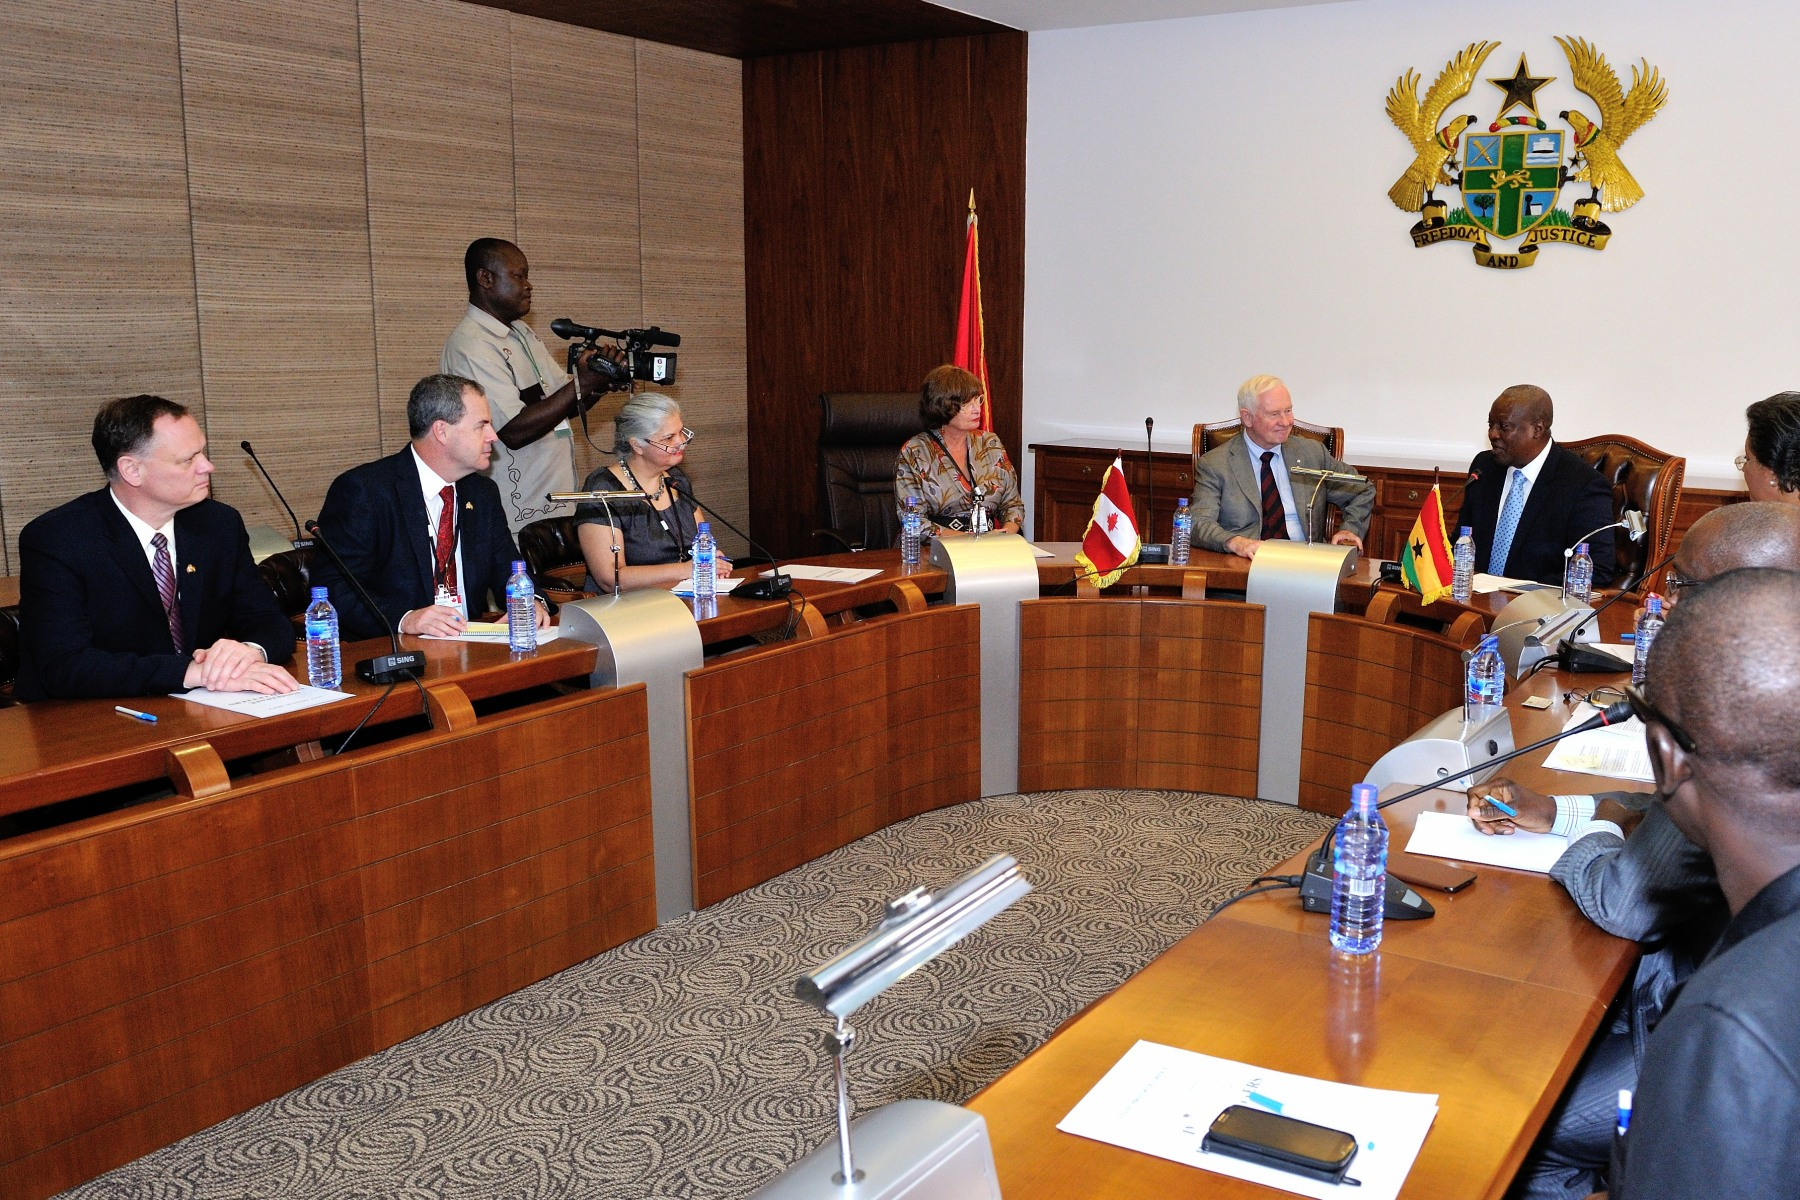 An expanded meeting with the official and accompanying delegations also took place.